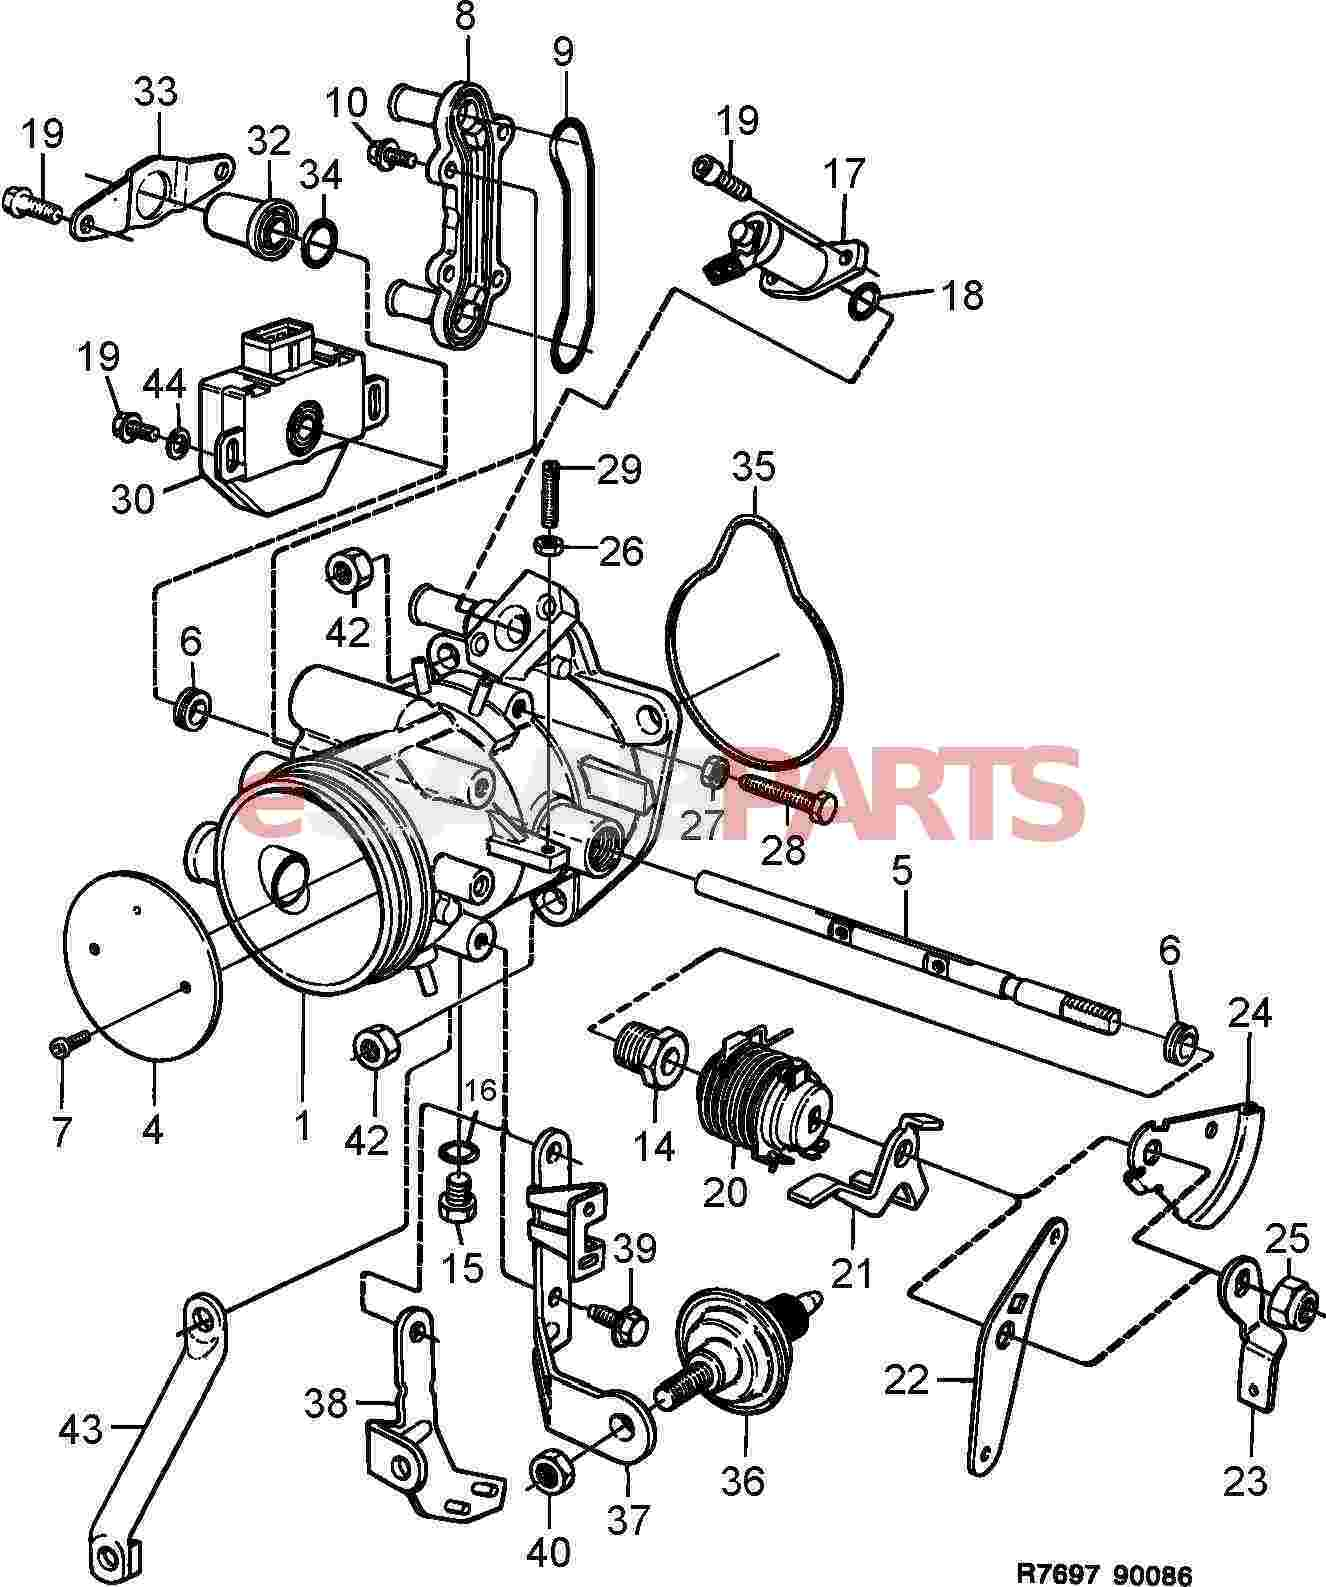 Ej205 Engine Diagram Wiring Will Be A Thing Ej25 Sh3 Me Cooling System Ej255